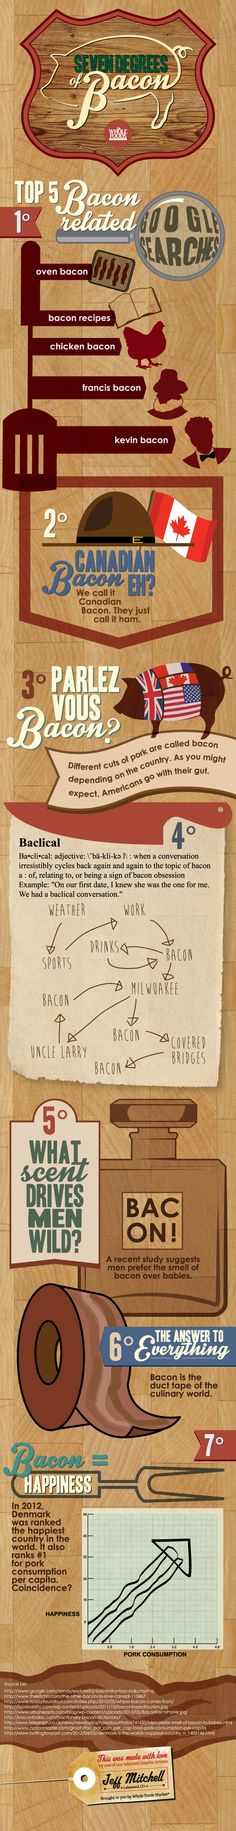 Seven degrees of bacon!